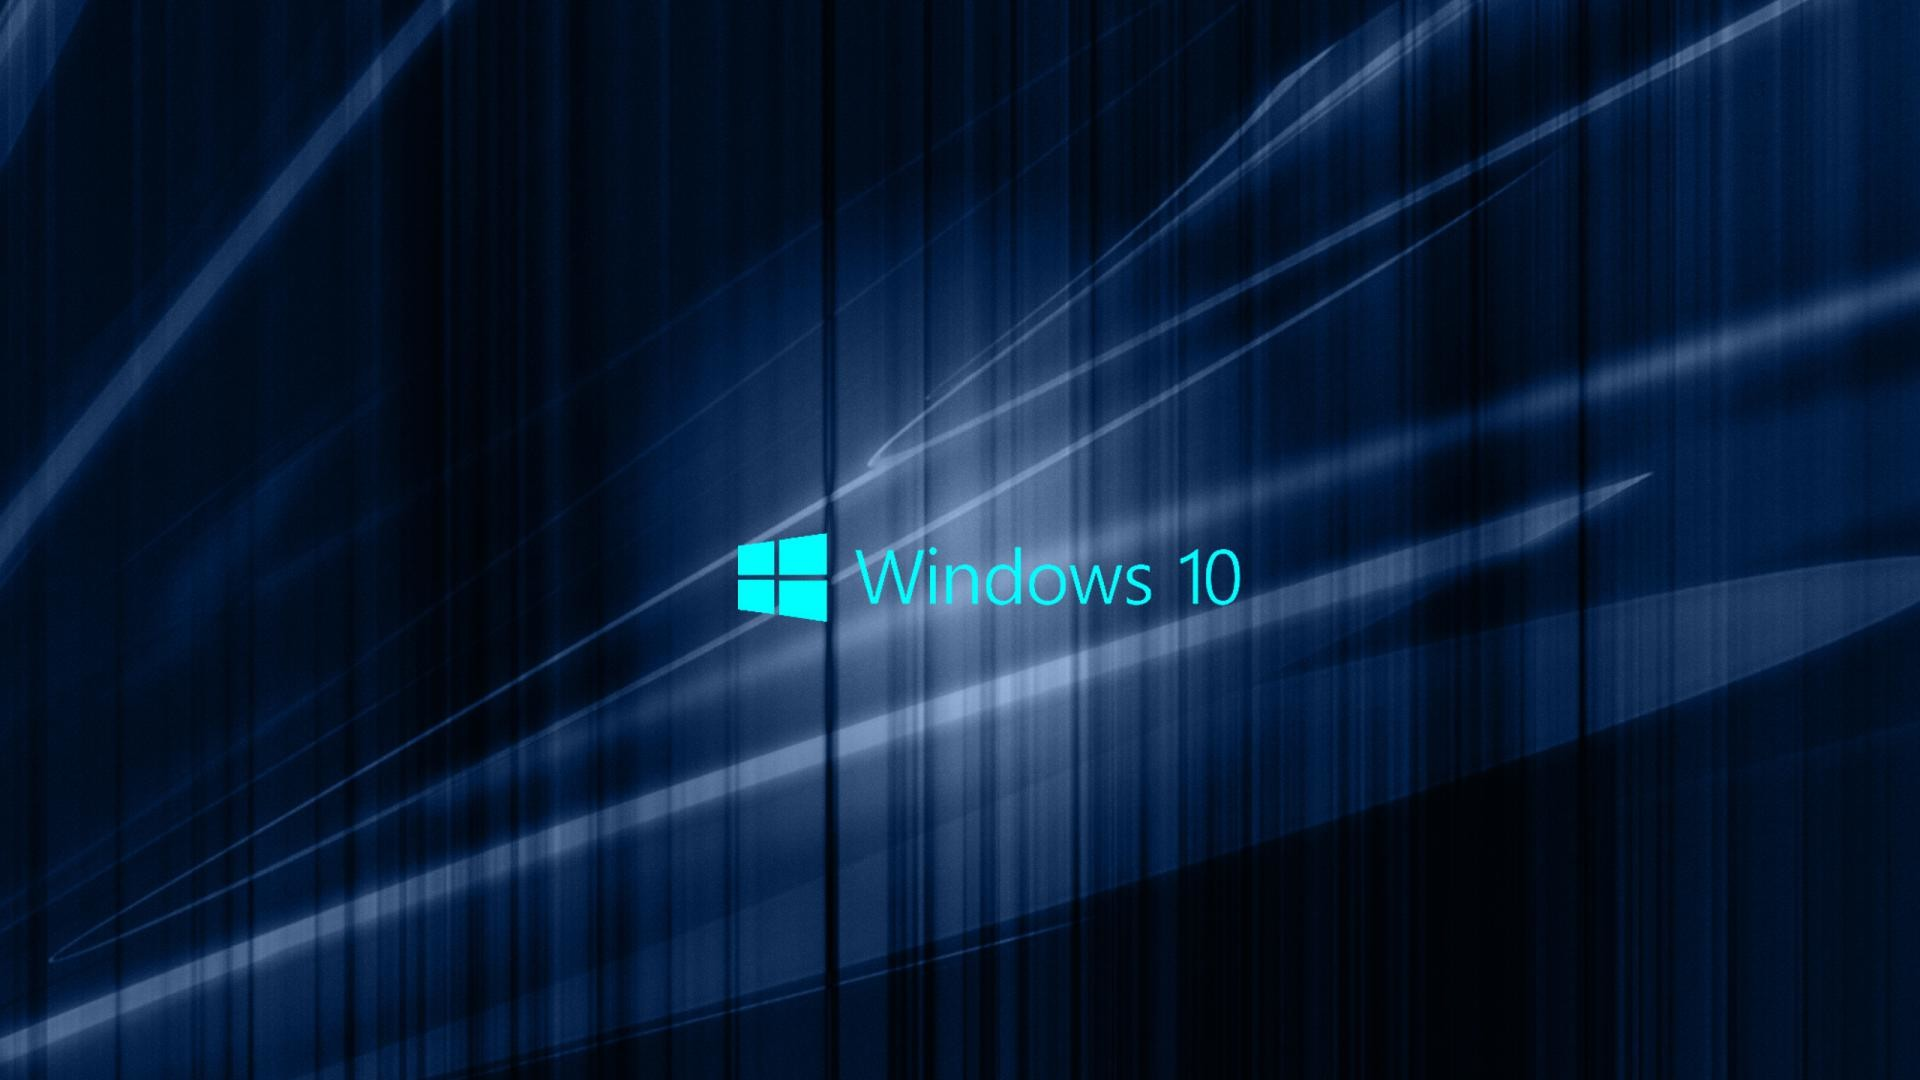 Windows Xp Professional Wallpaper X For Computer on Windows Office 10 Product Key